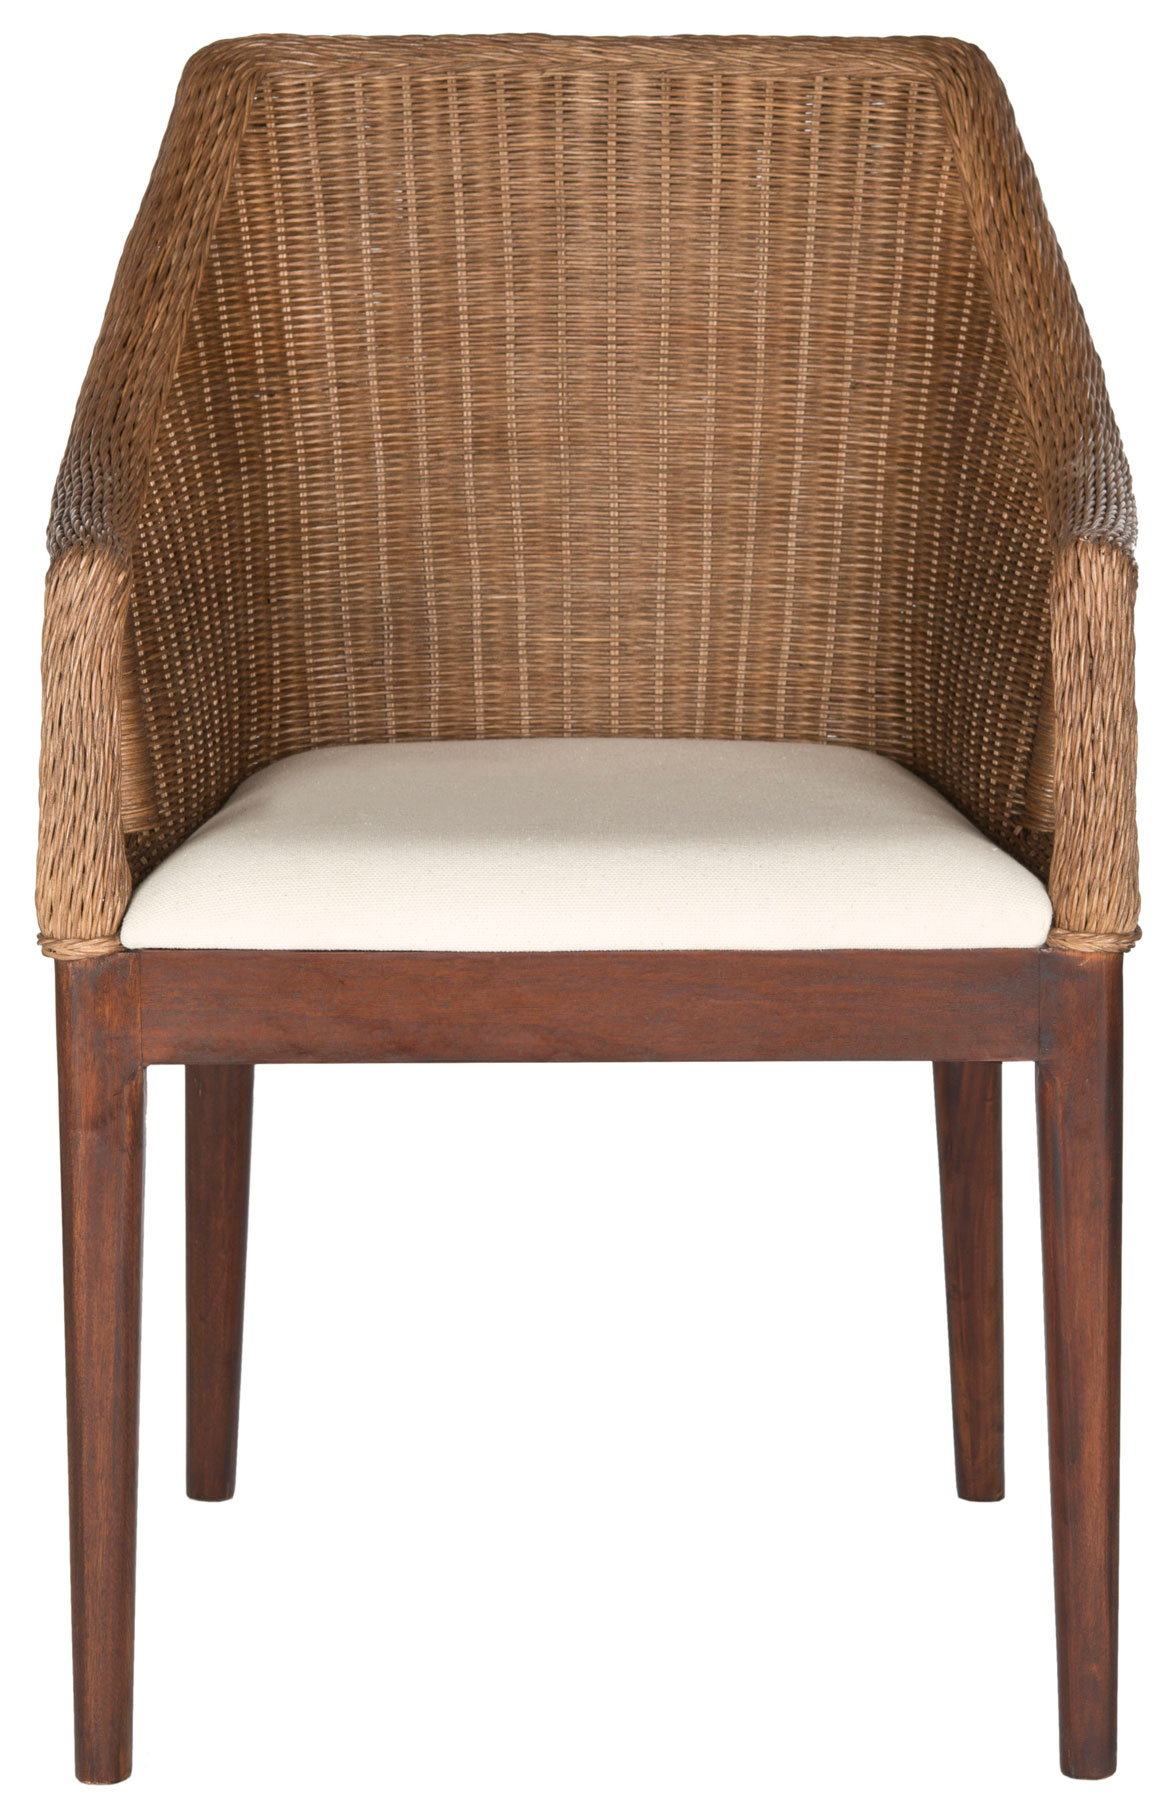 SEA4016A Accent Chairs Furniture by Safavieh